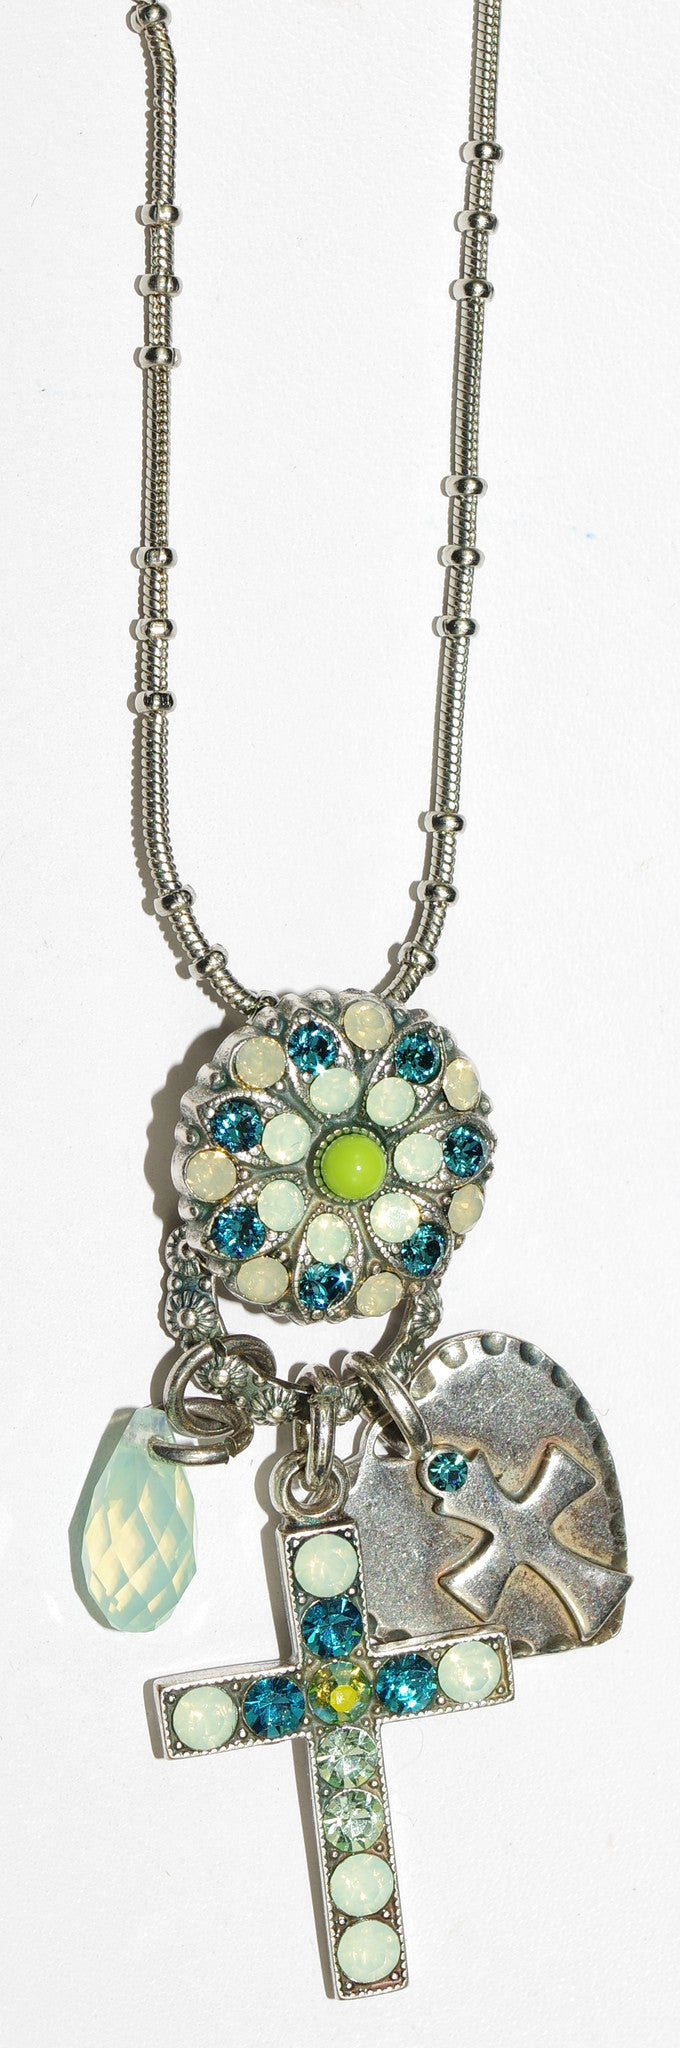 "MARIANA CROSS PENDANT GRACE: green, teal, stones in 2"" silver setting, 24"" adjustable chain"